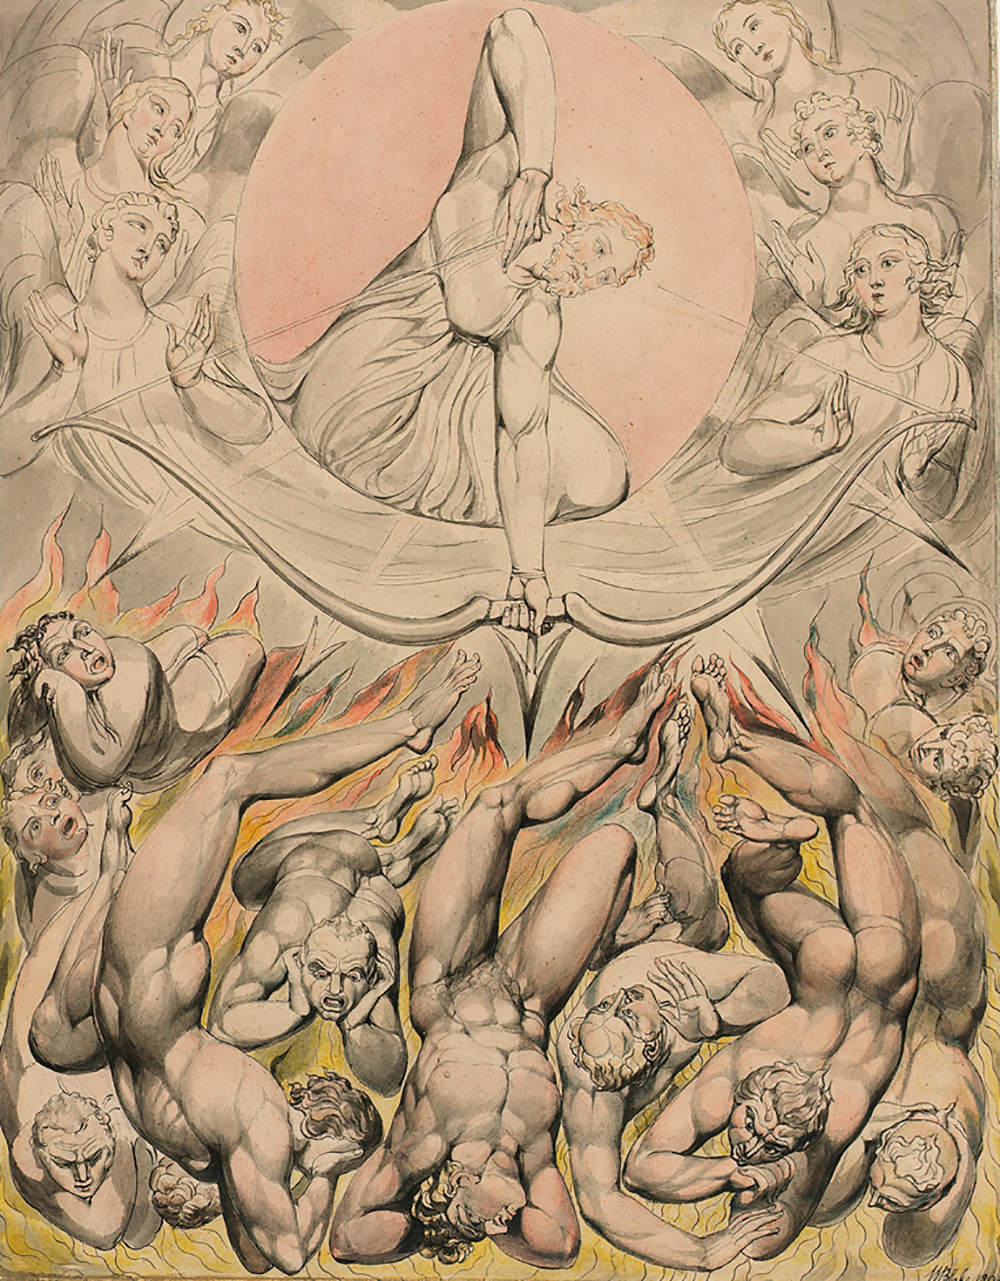 The Casting of the Rebel Angels into Hell (illustration of Milton's Paradise Lost), by William Blake, 1808.